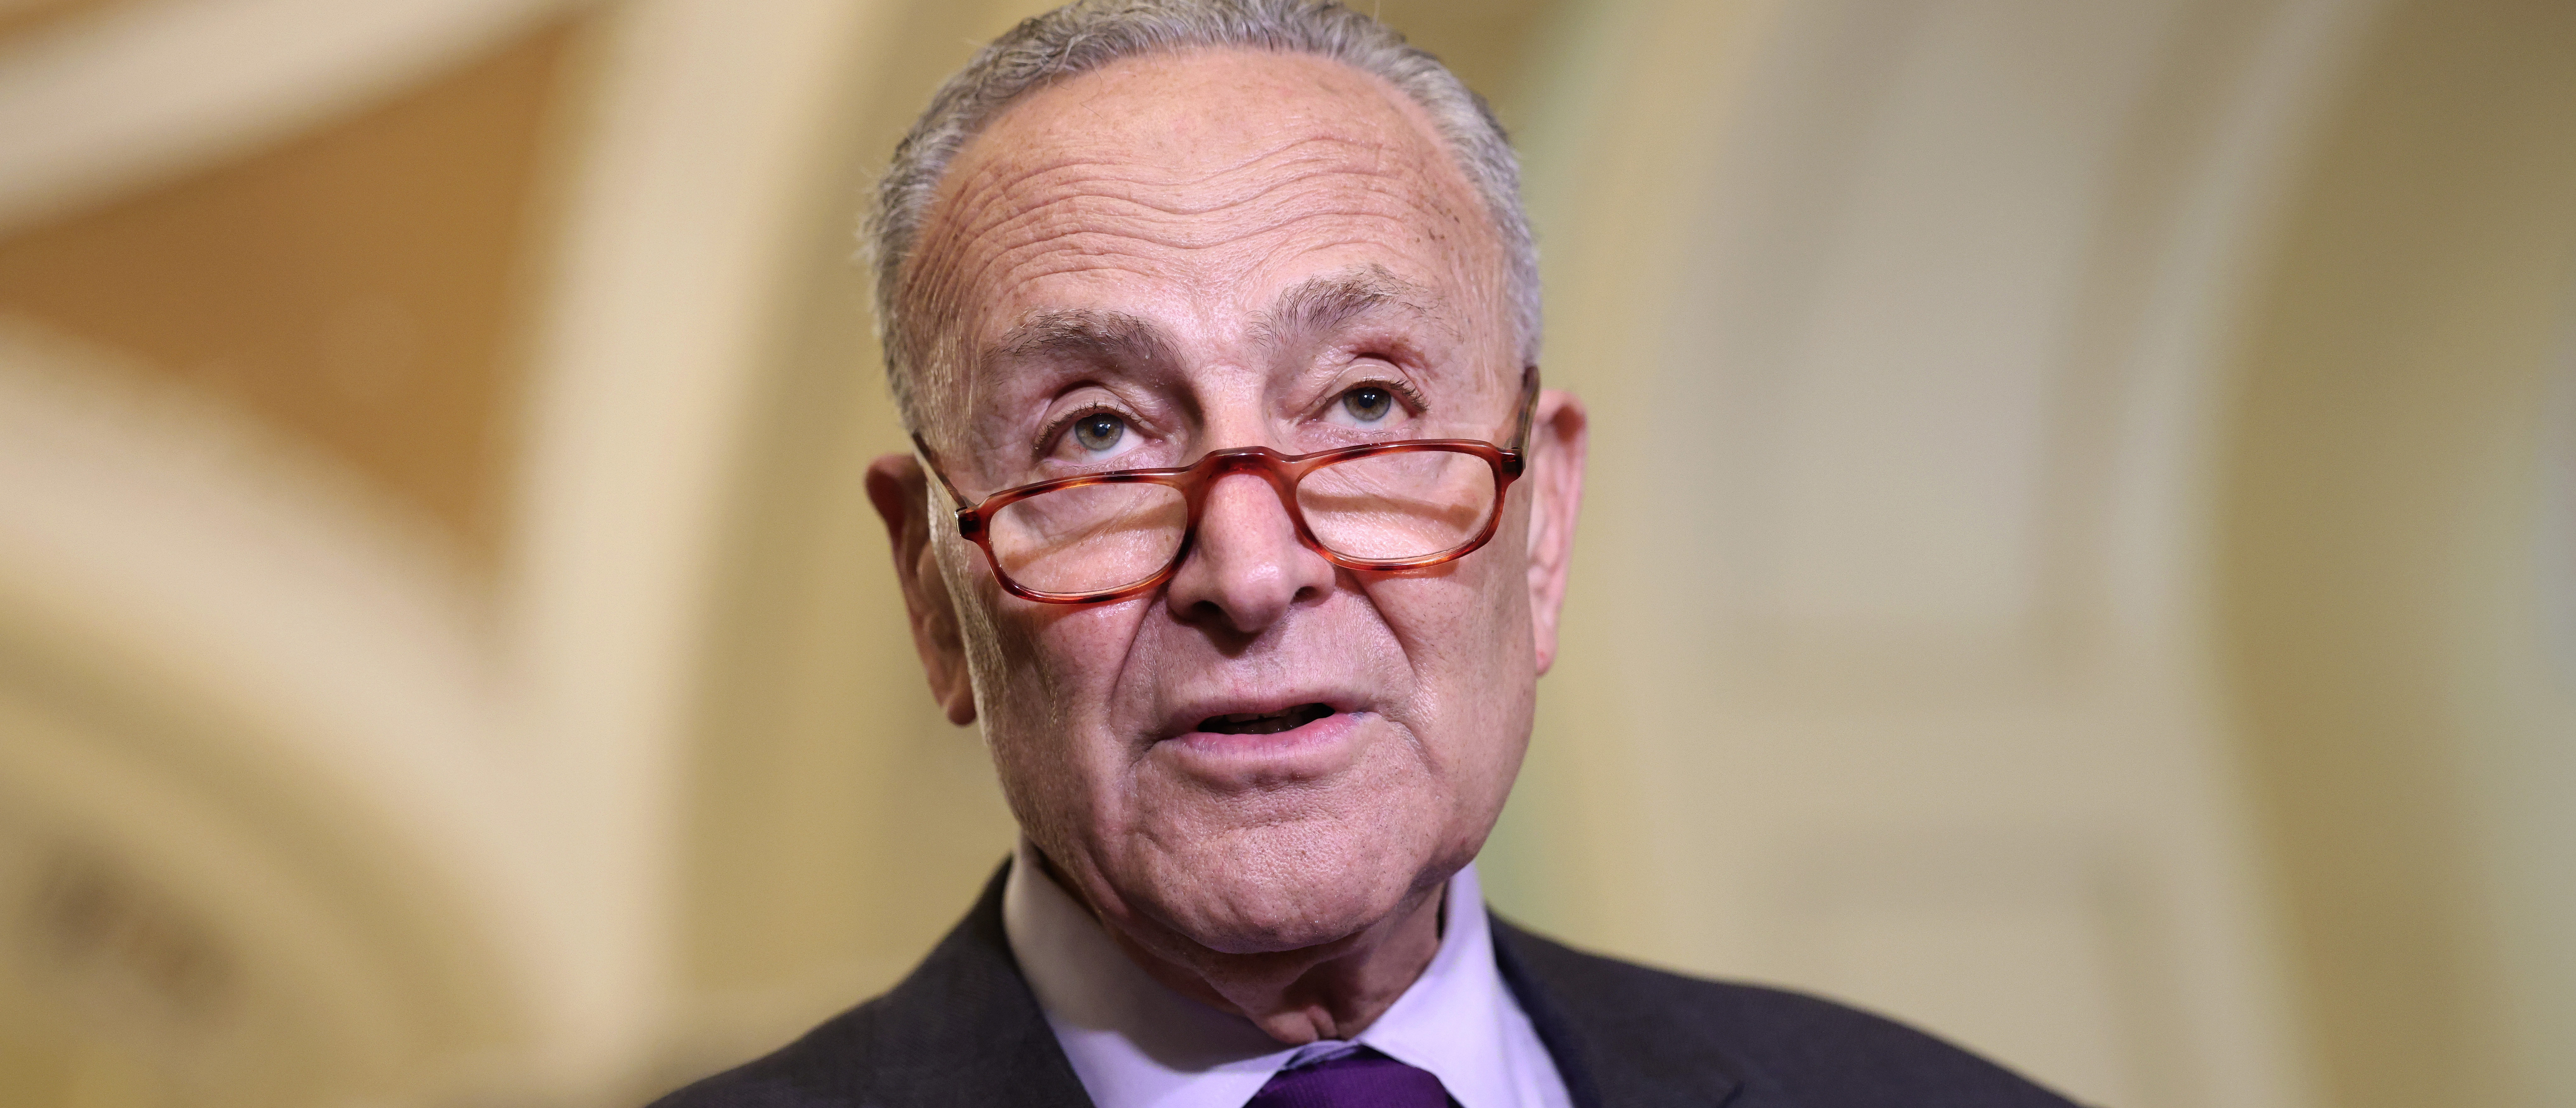 ANALYSIS: The One Person Who Could Stop Democrats' Huge Amnesty Plan Just Did